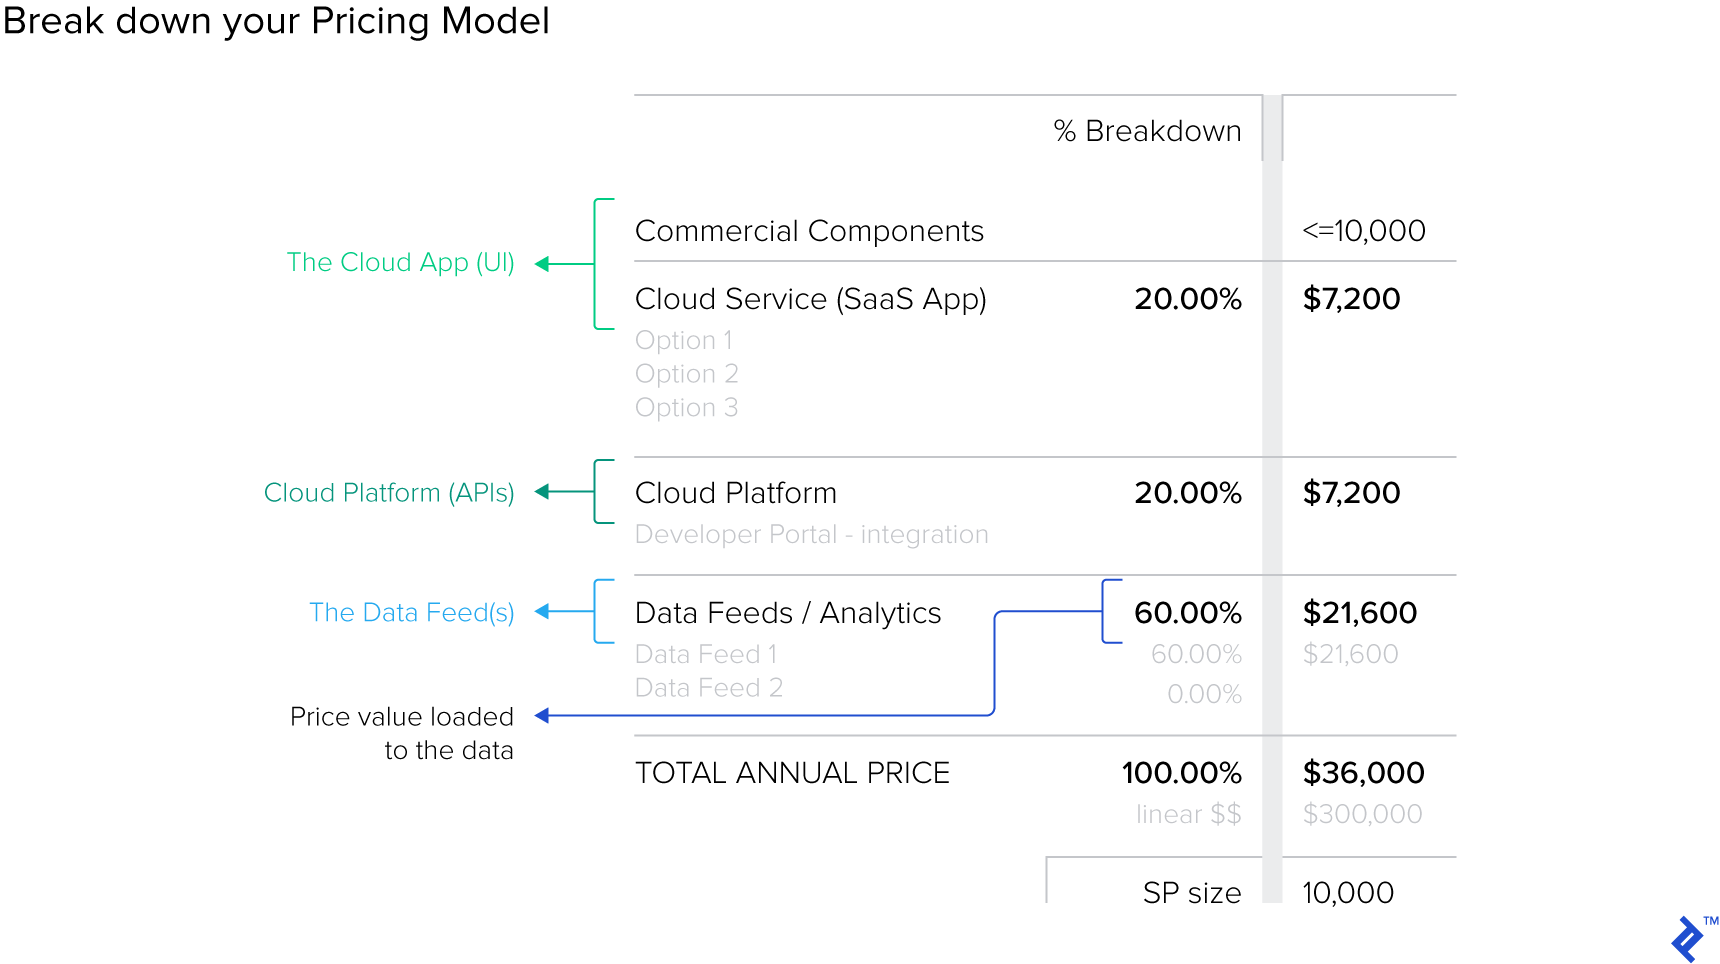 Breaking down your Pricing Model